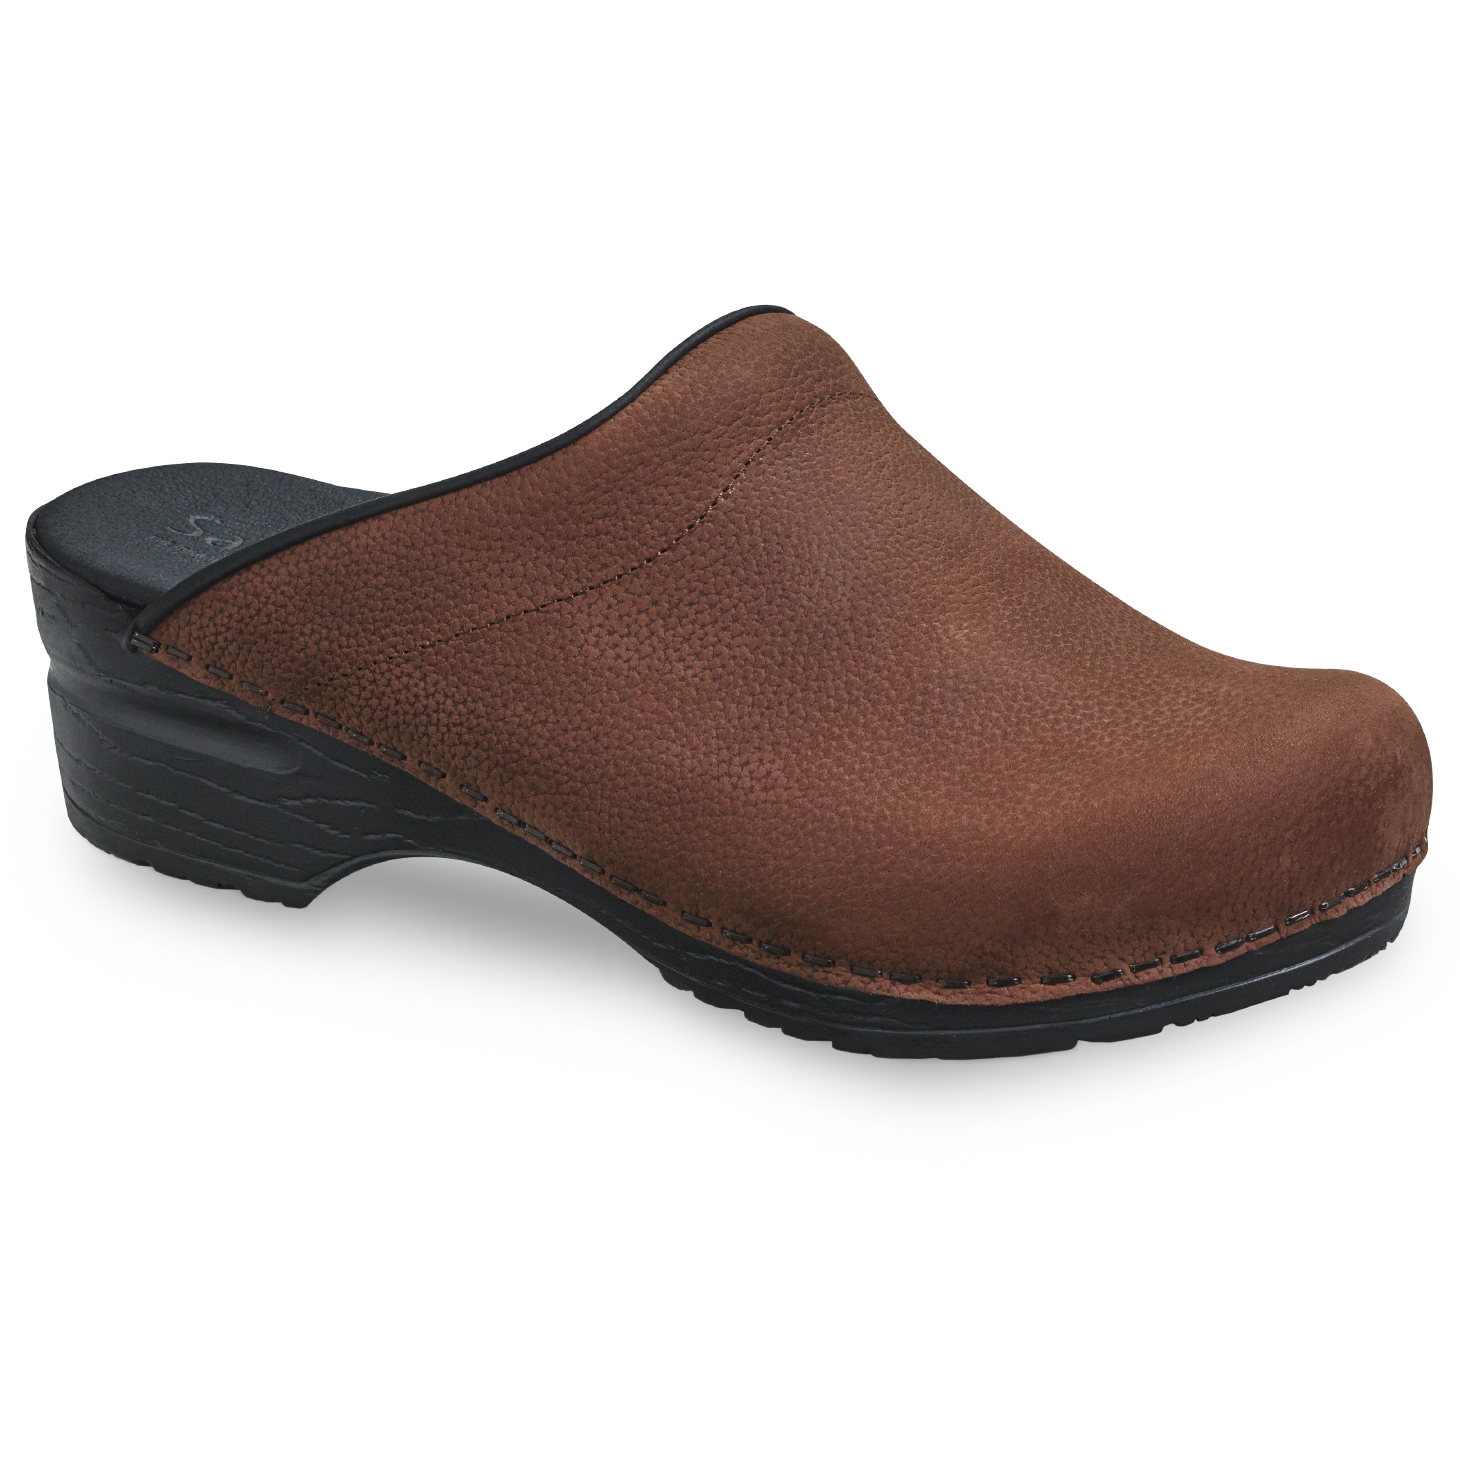 Sanita Sonja Textured Oil Women's in Antique Brown Open Back Clog